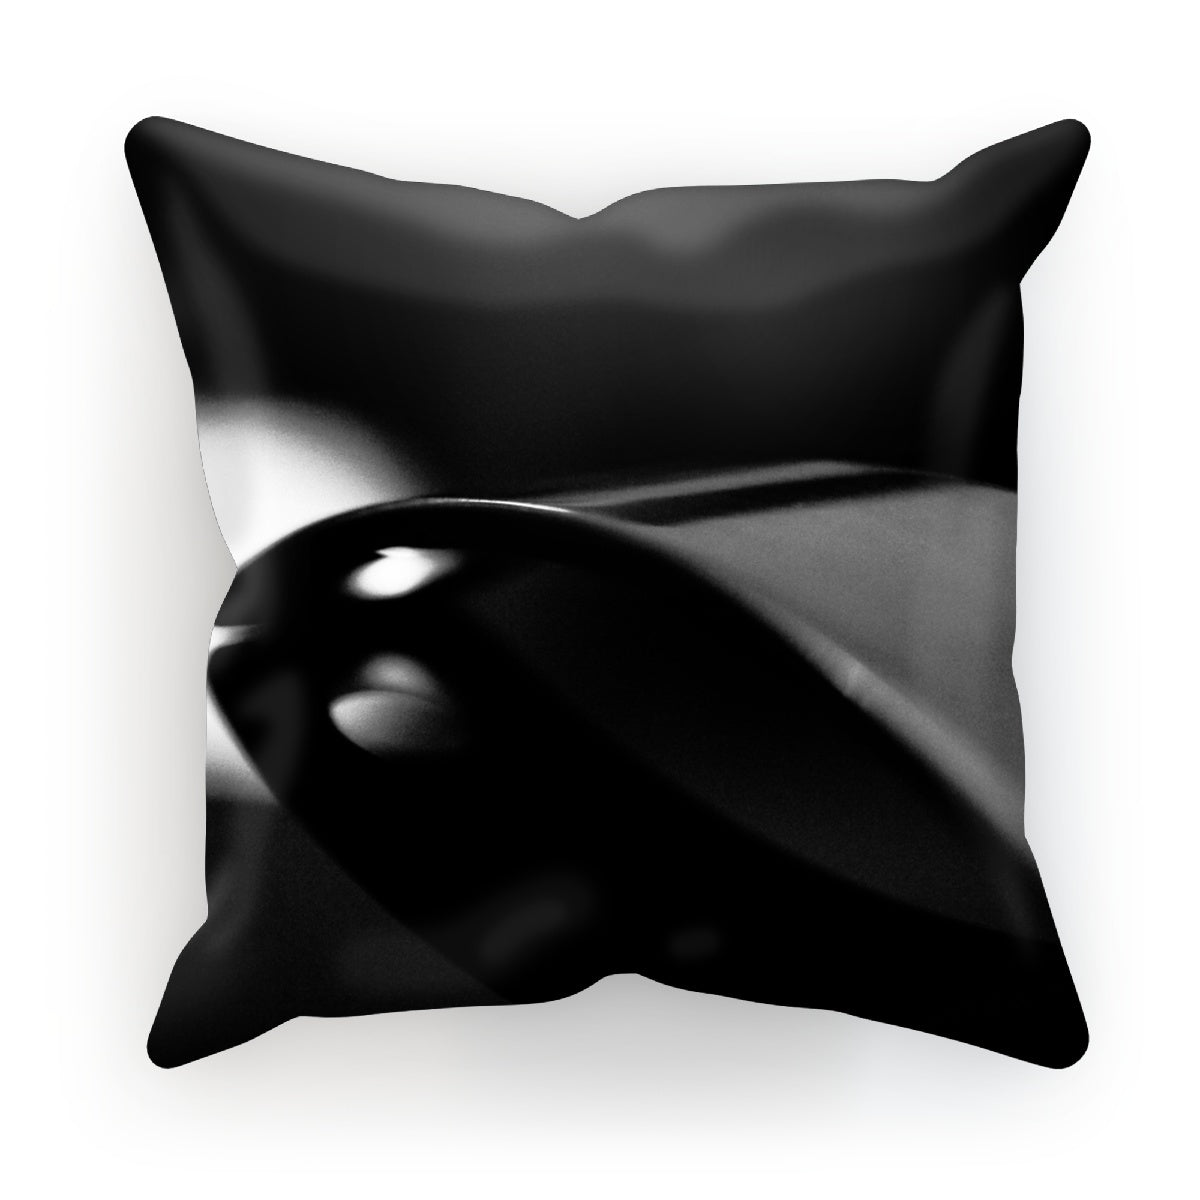 BO-02 Cushion